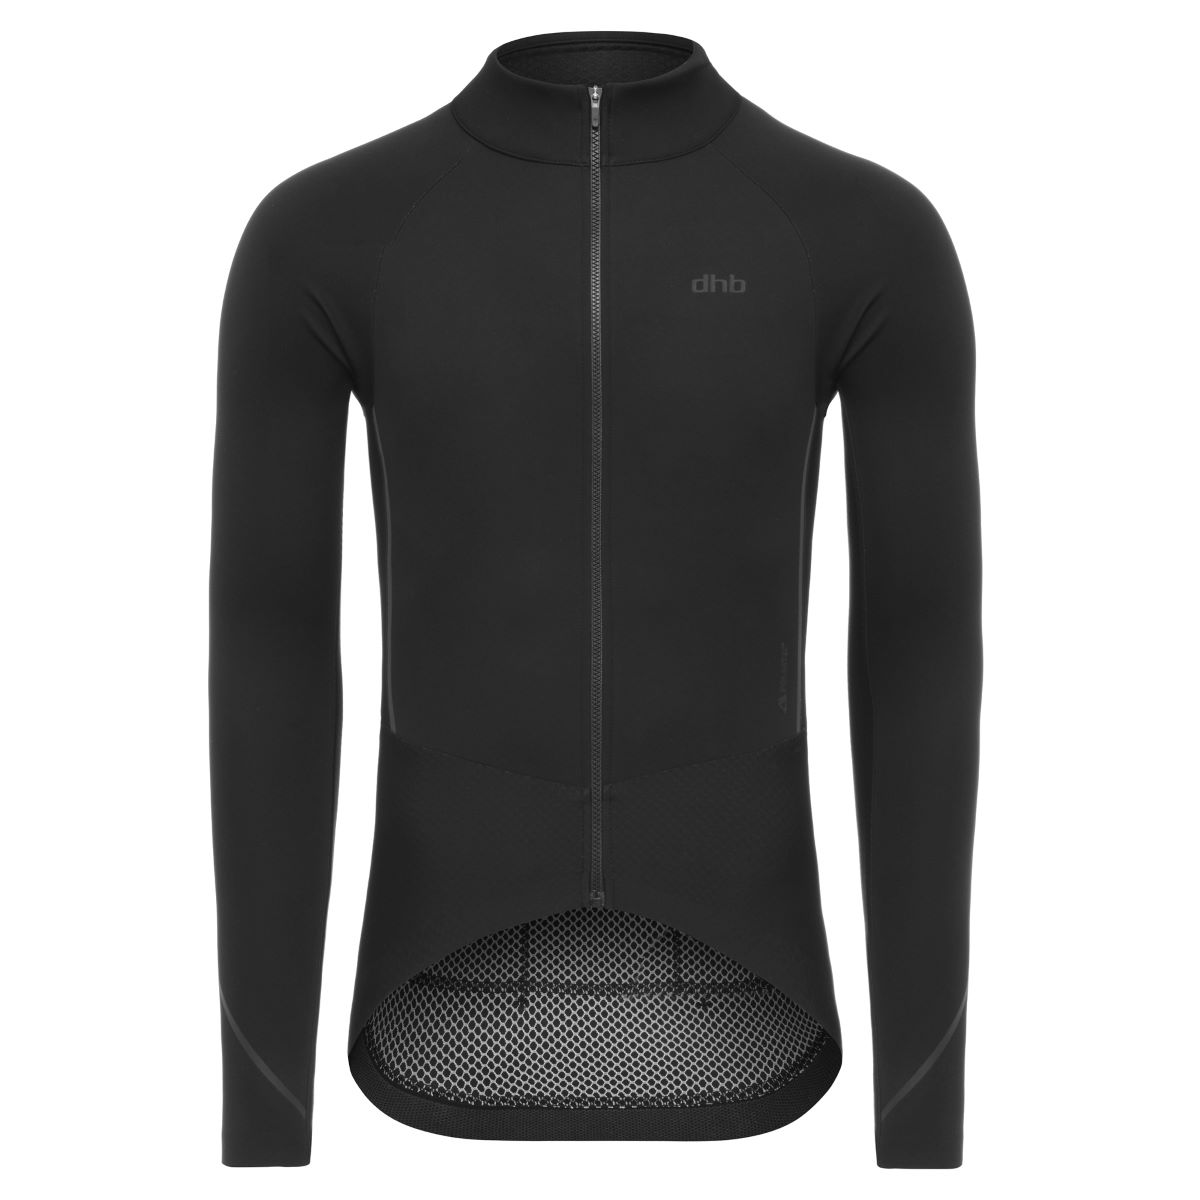 dhb Aeron Lab Equinox Jersey – Extra Large Black | Jerseys